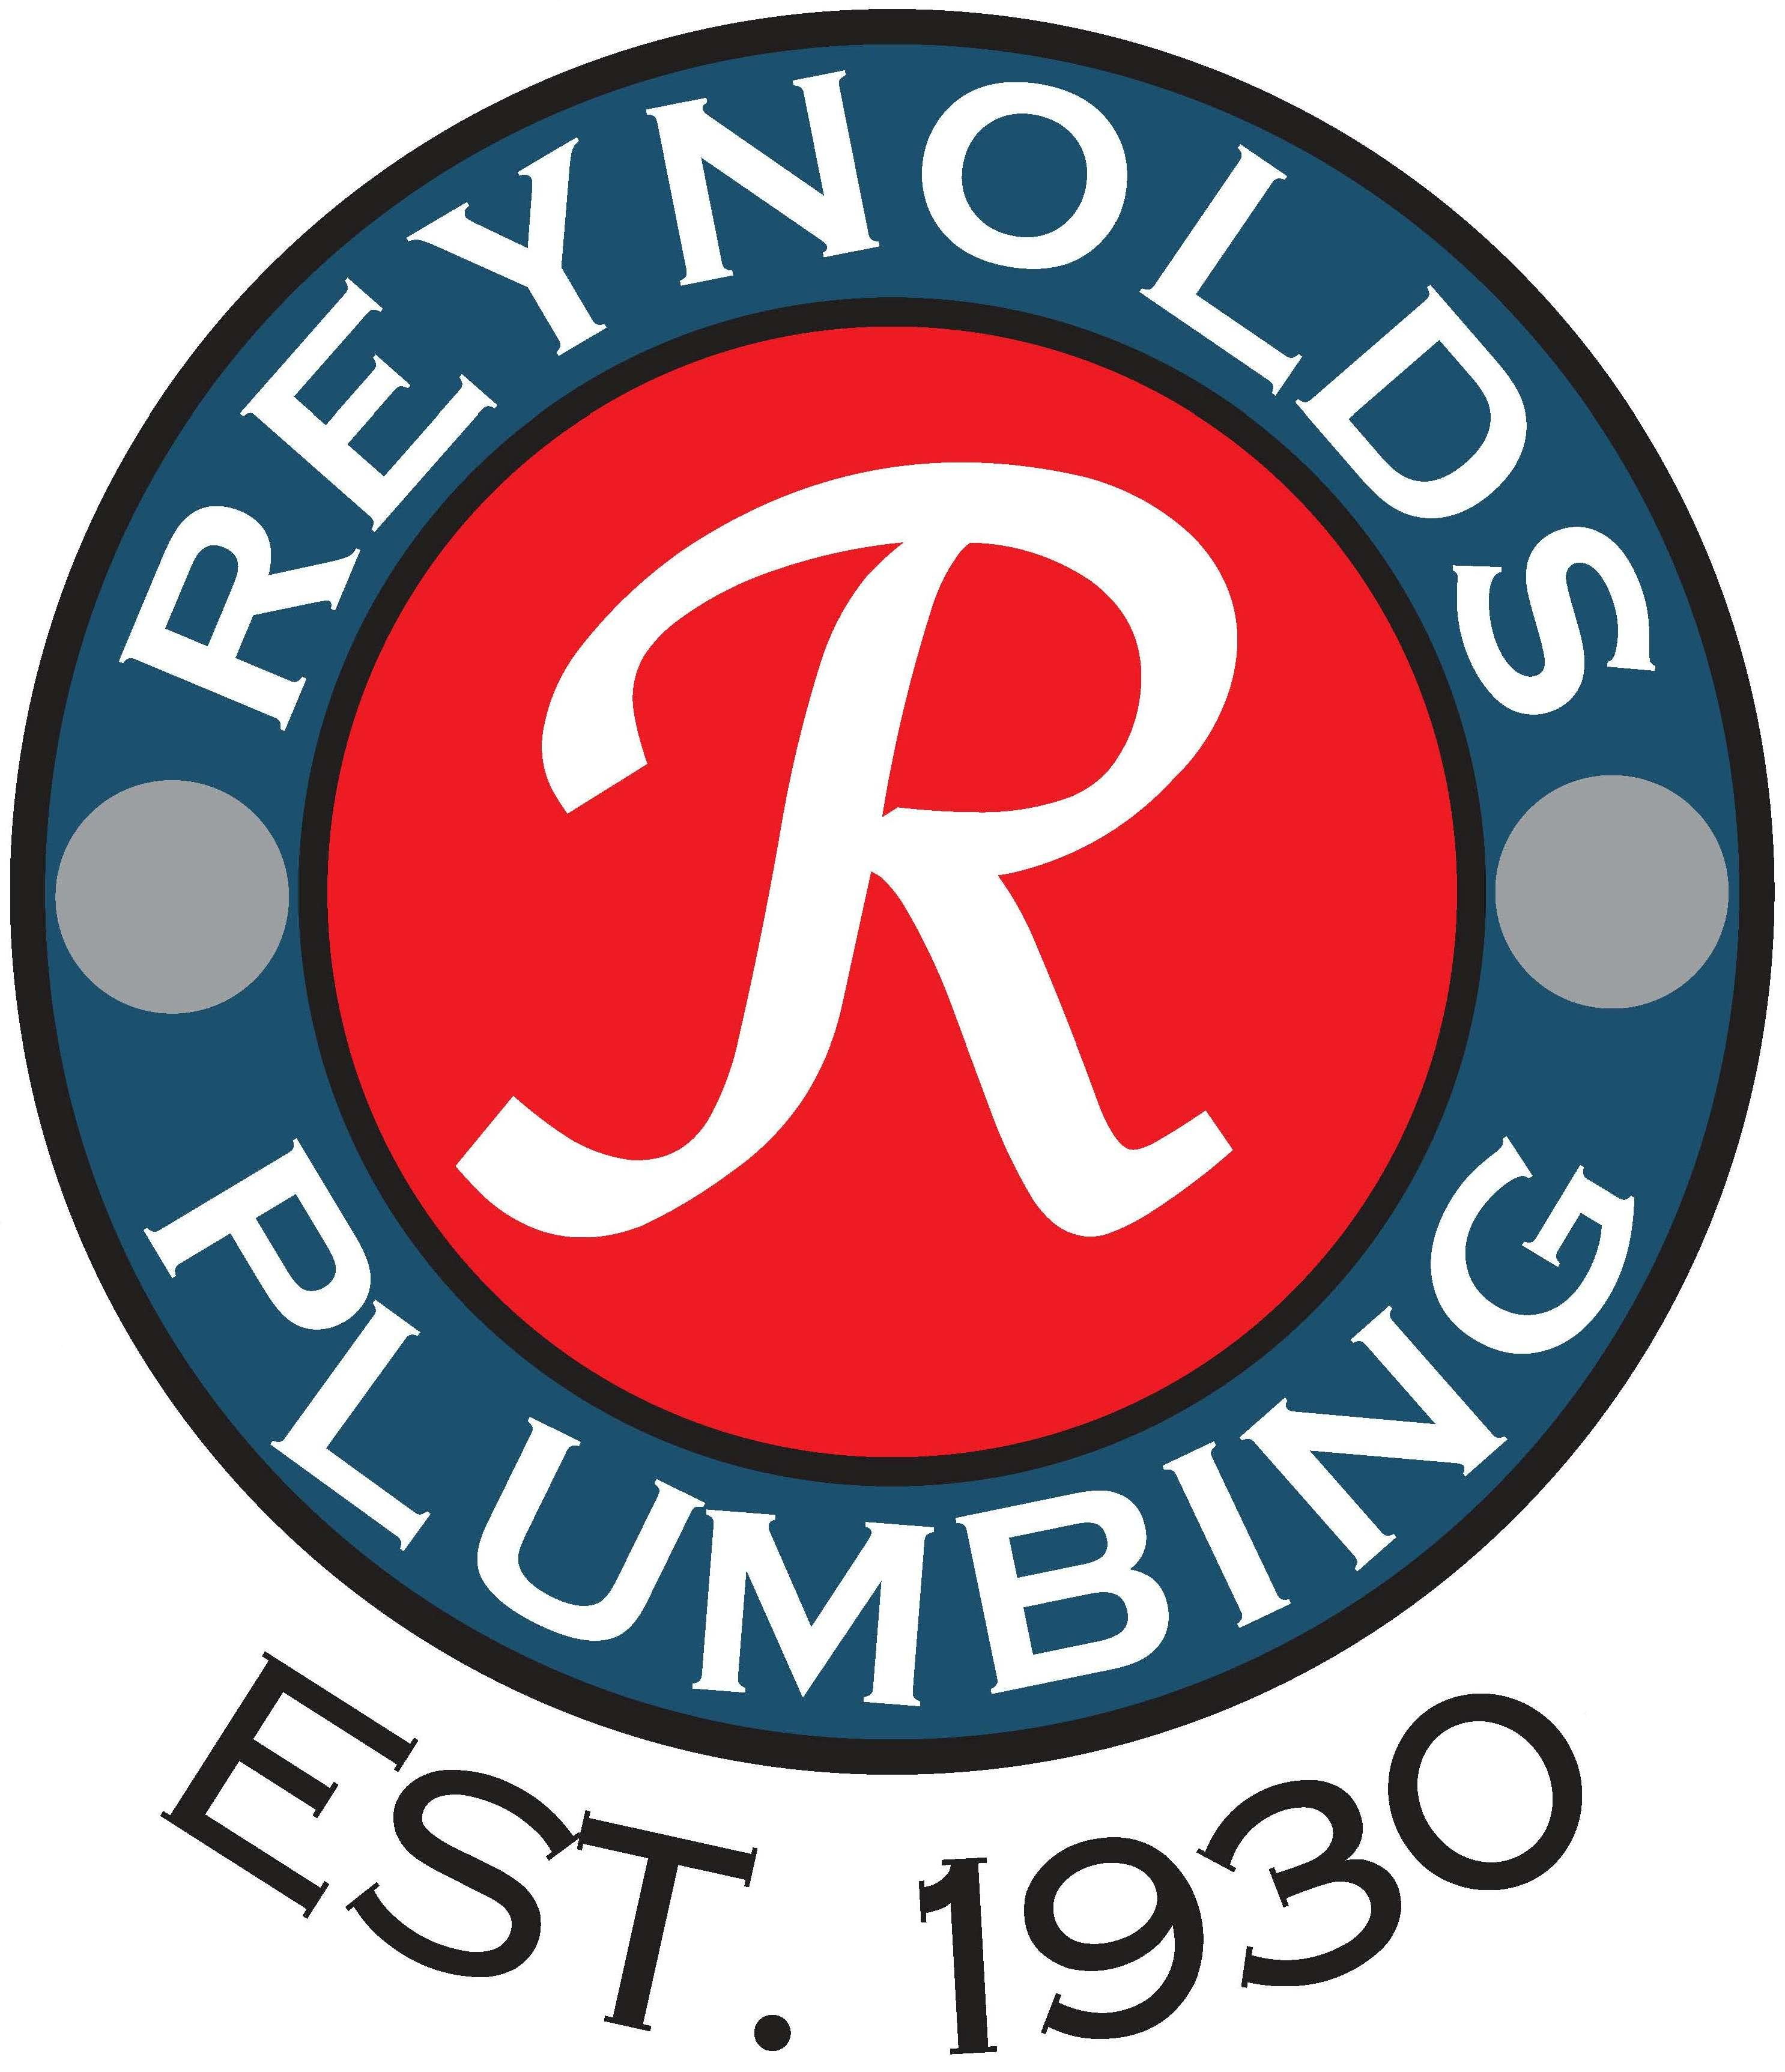 Reynolds Plumbing, Heating & Cooling